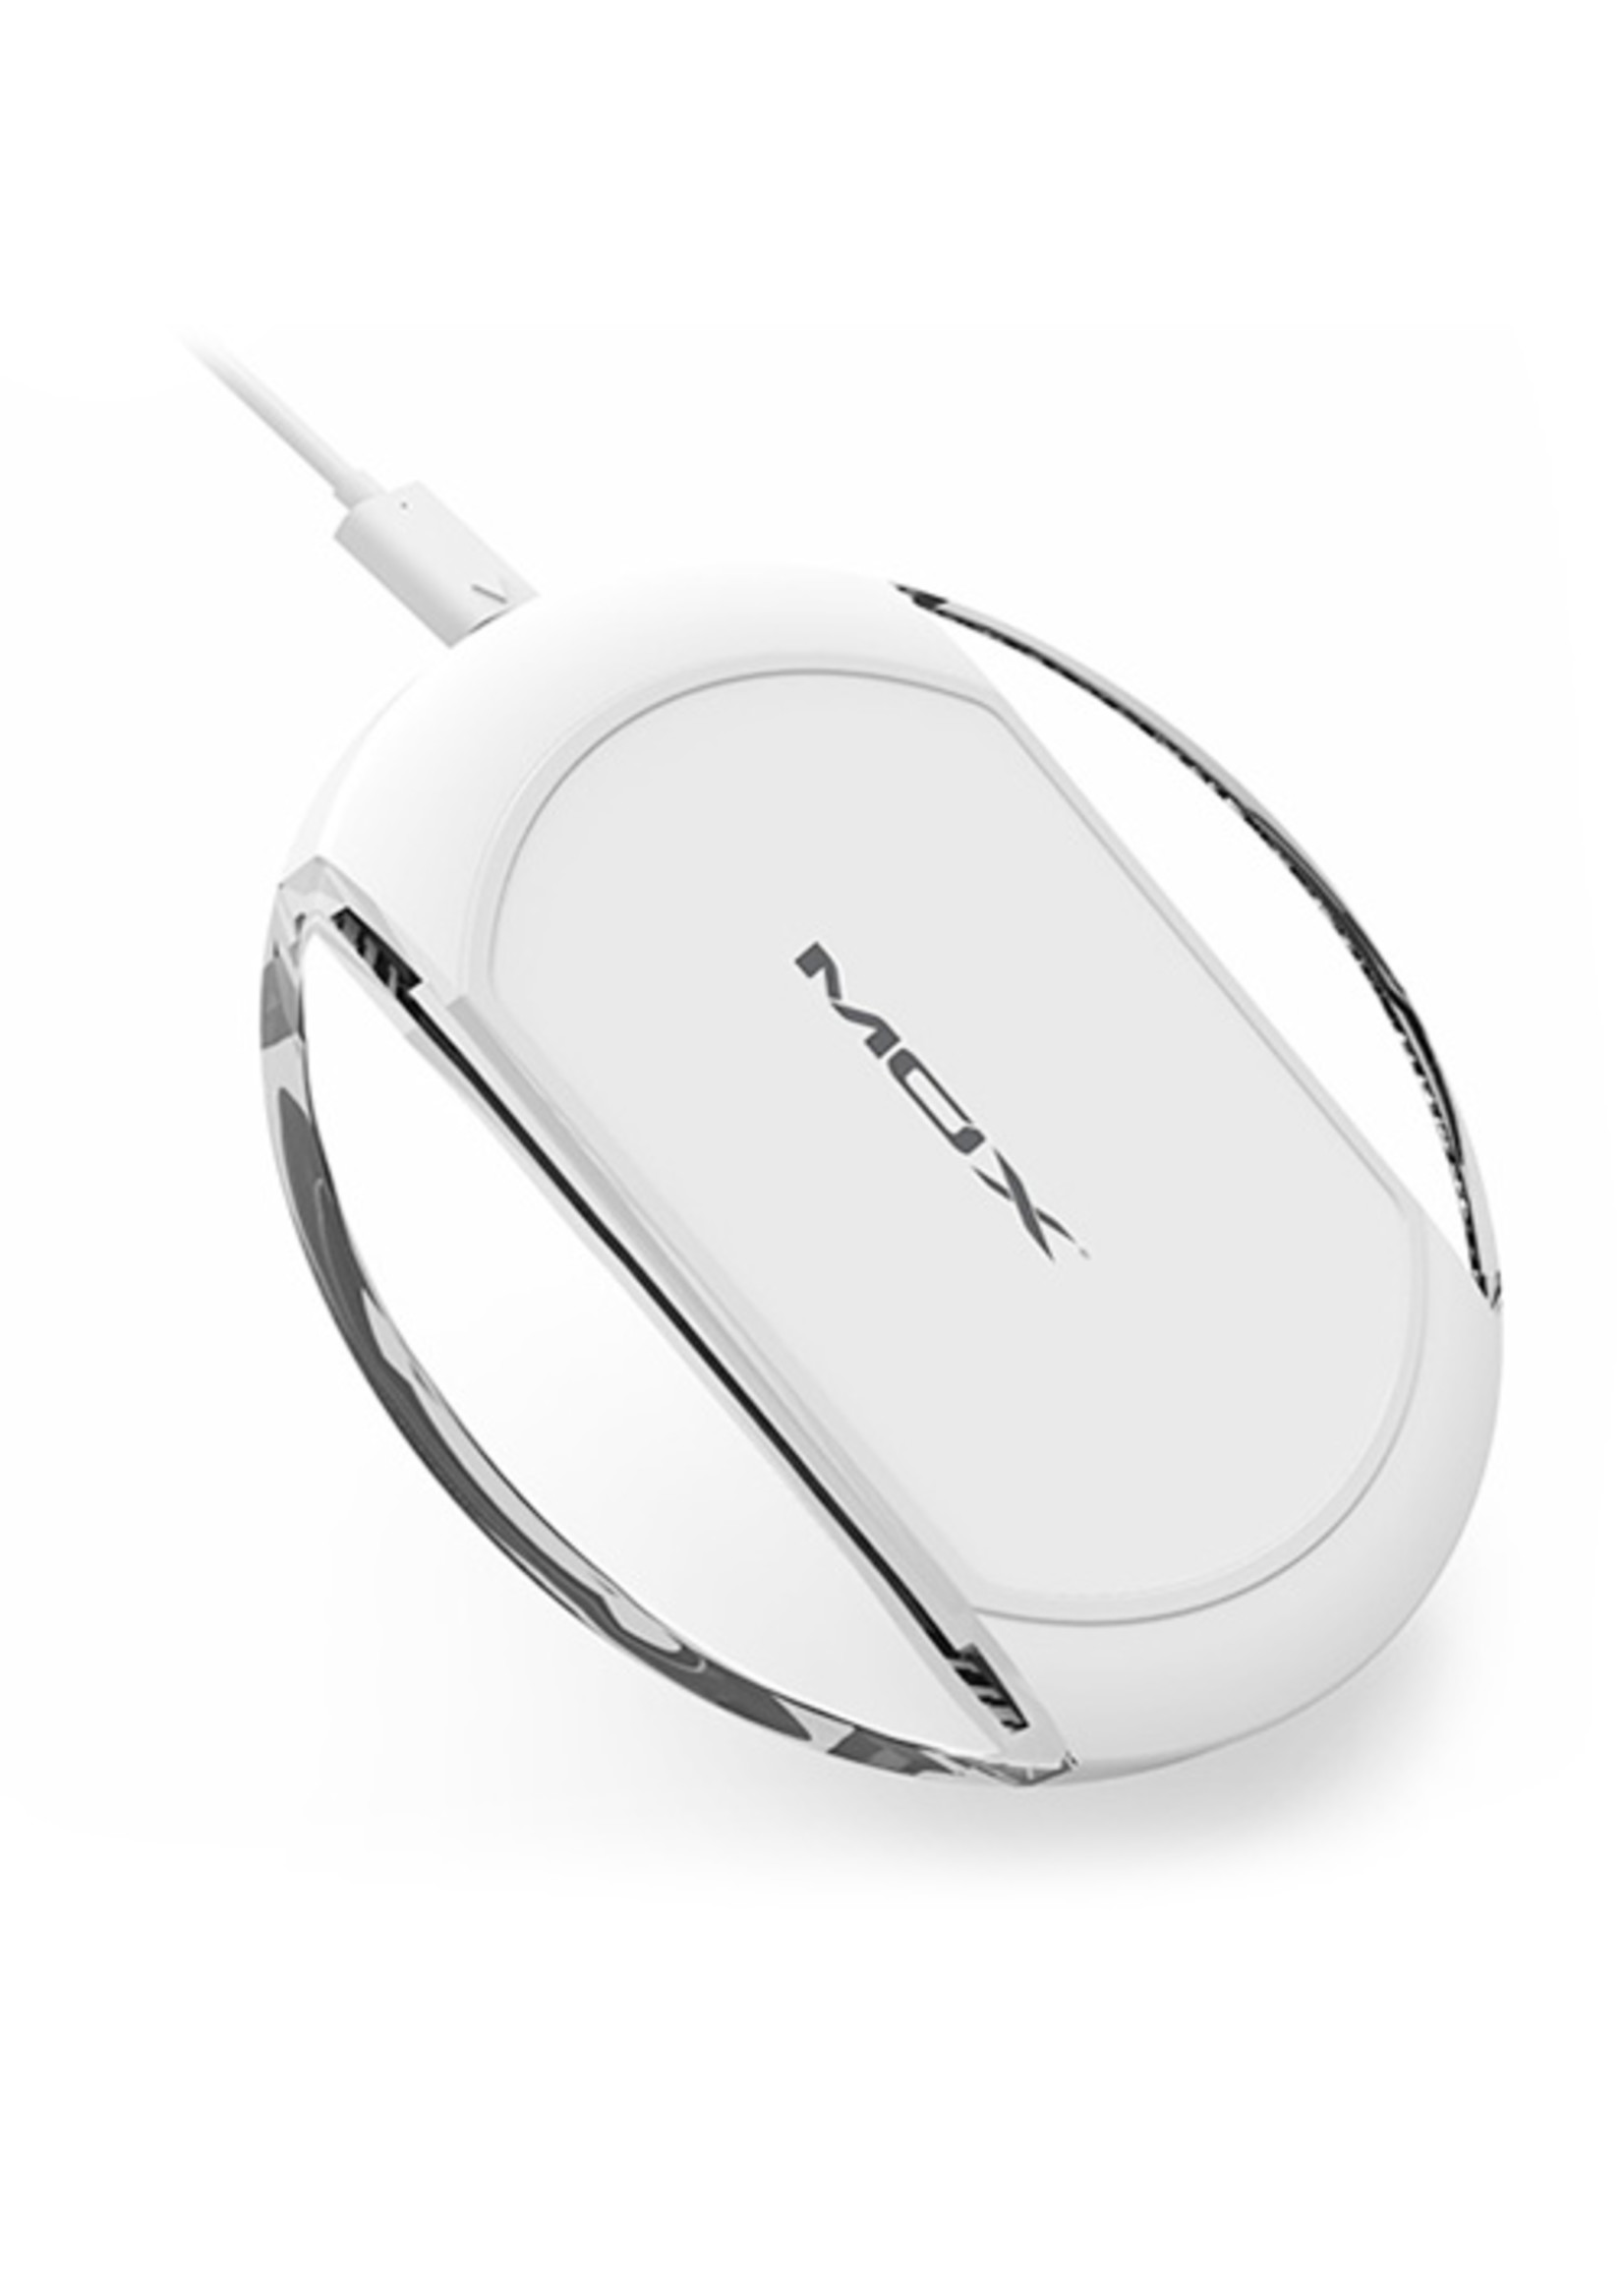 MOX MOX Phone Wireless Charger